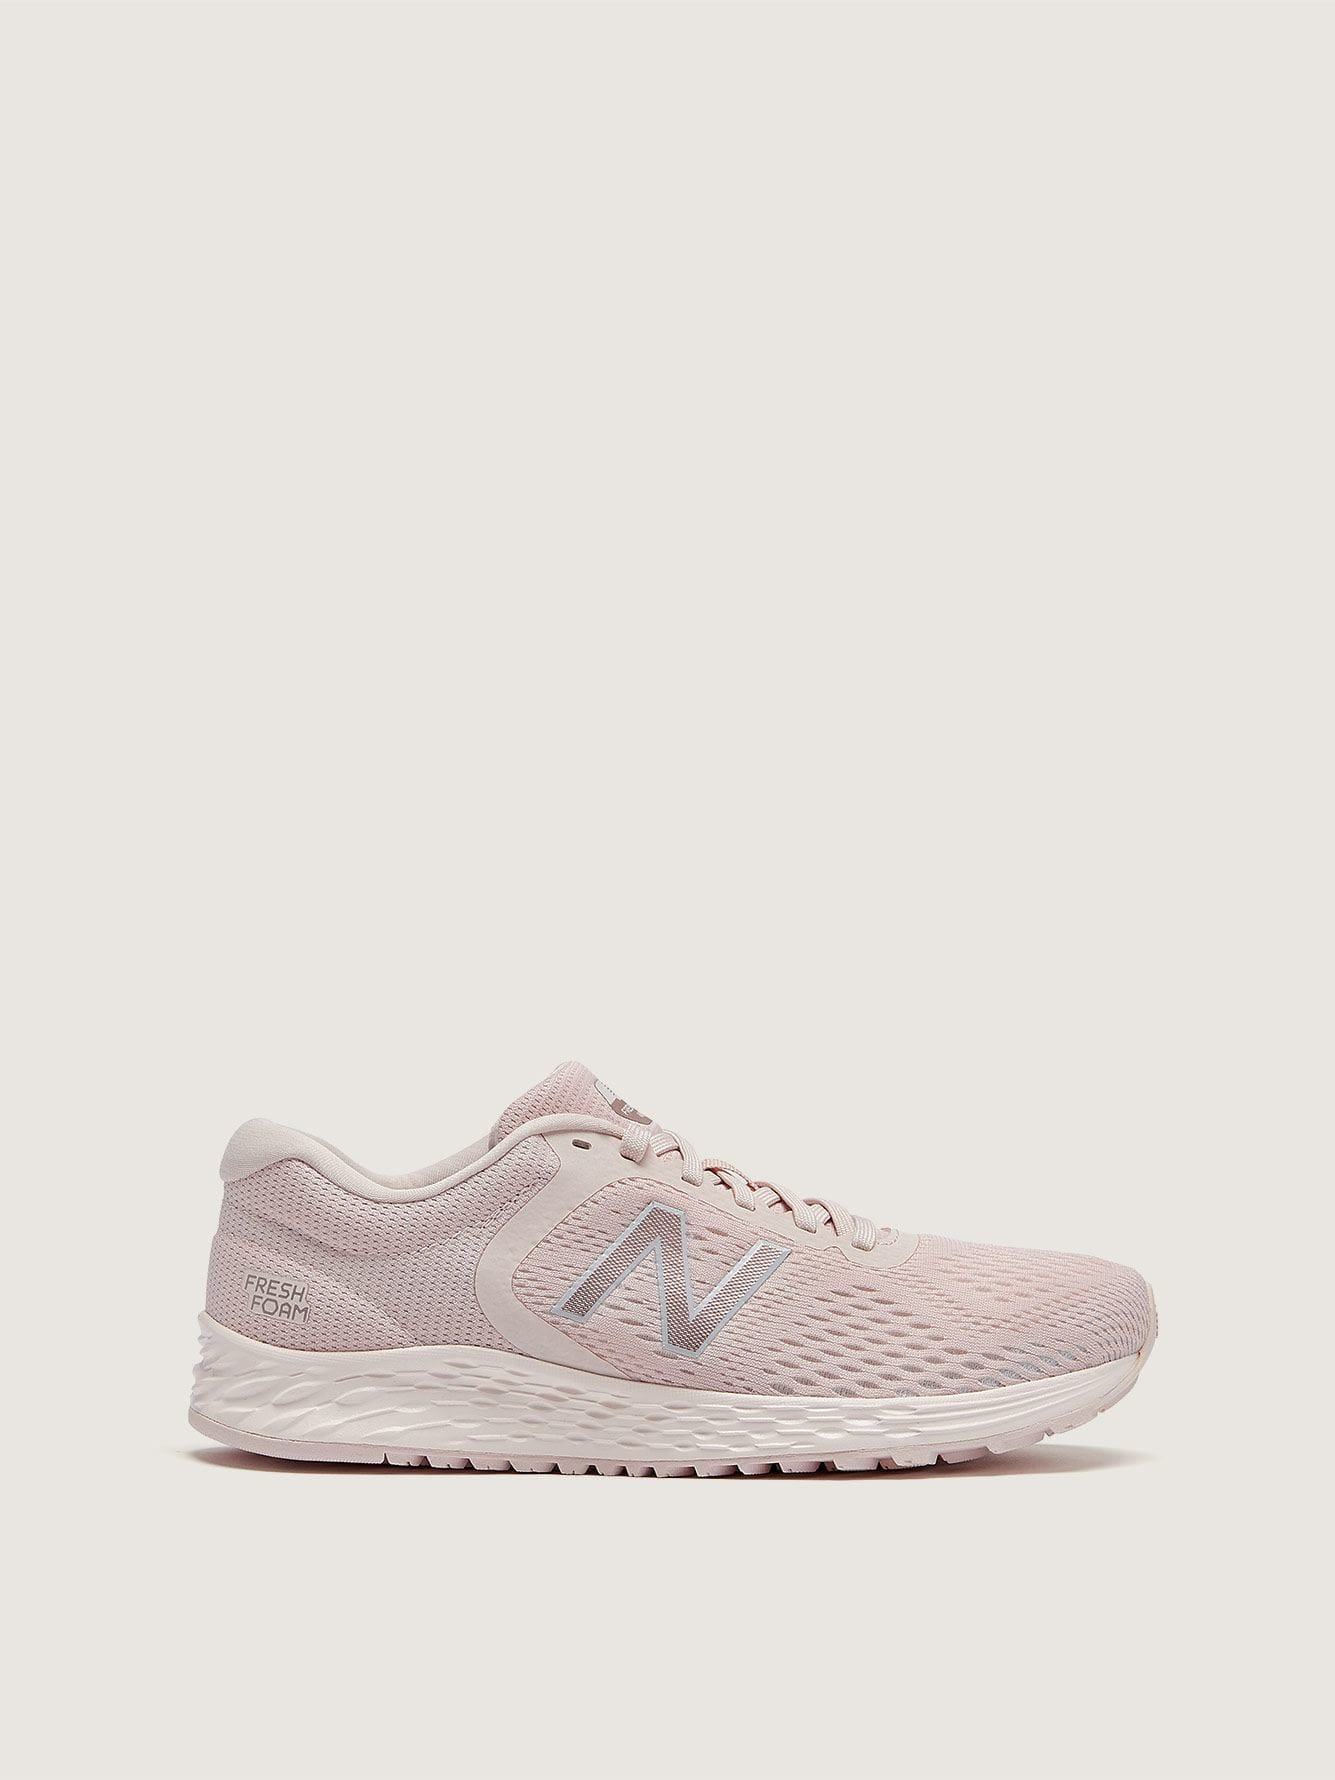 Wide Breathable Lace Up Arishi Sneakers - New Balance